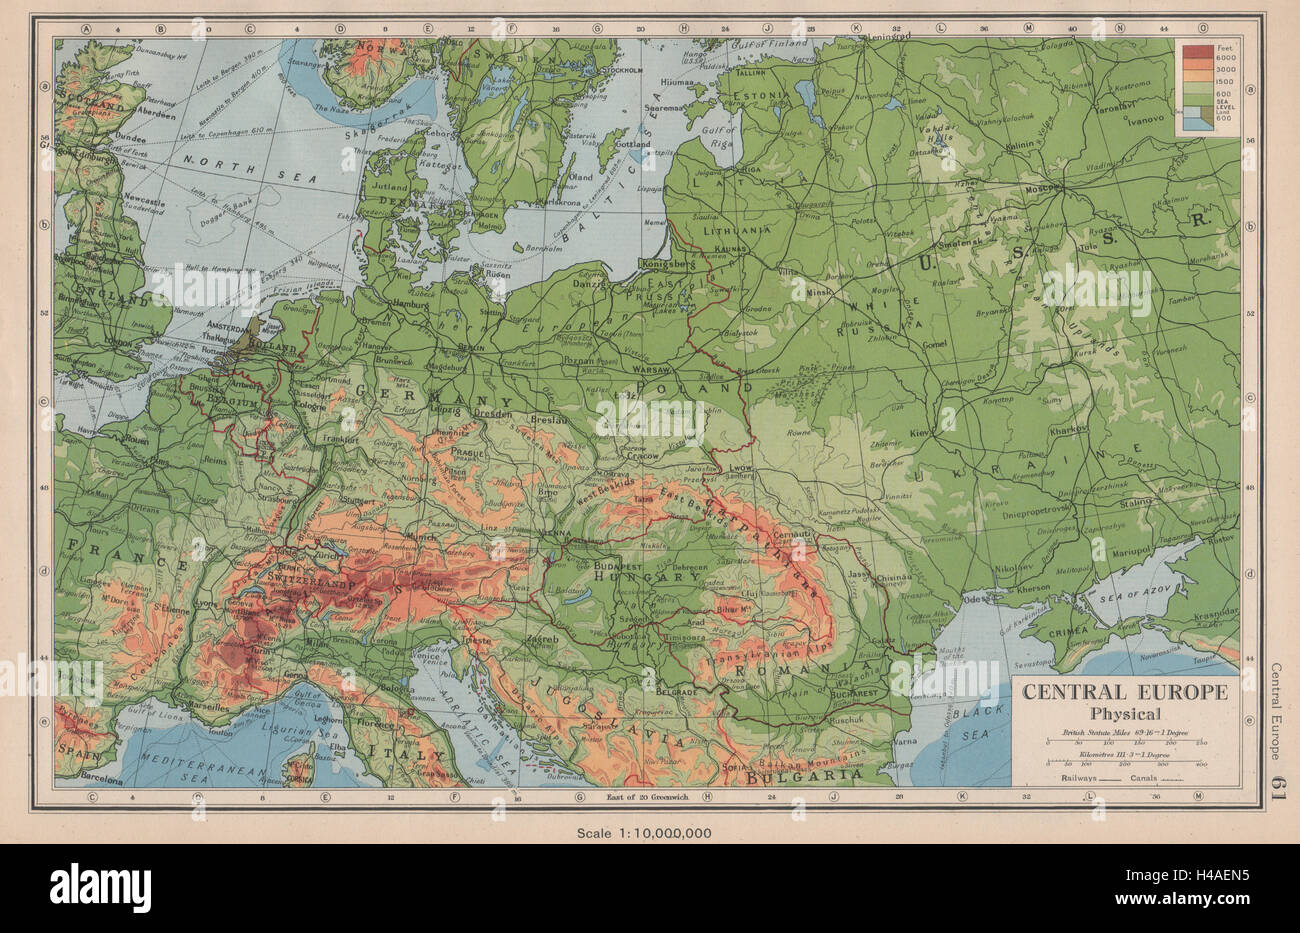 CENTRAL EUROPE Physical Shows Third Reich Enlarged Hungary - Europe map 1944